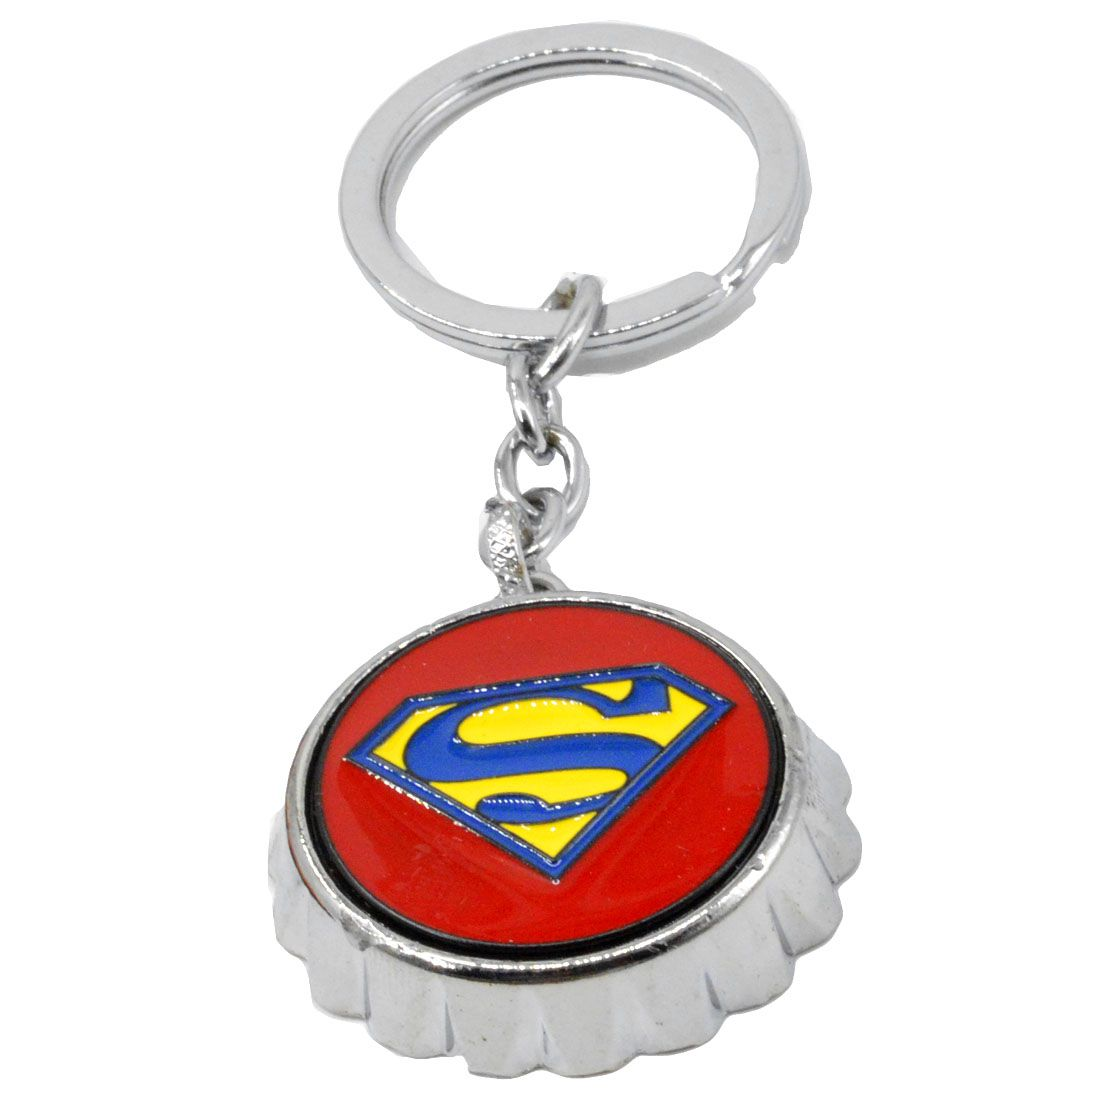 Faynci High Quality Stainless Steel Unique Man of Steel Red Button